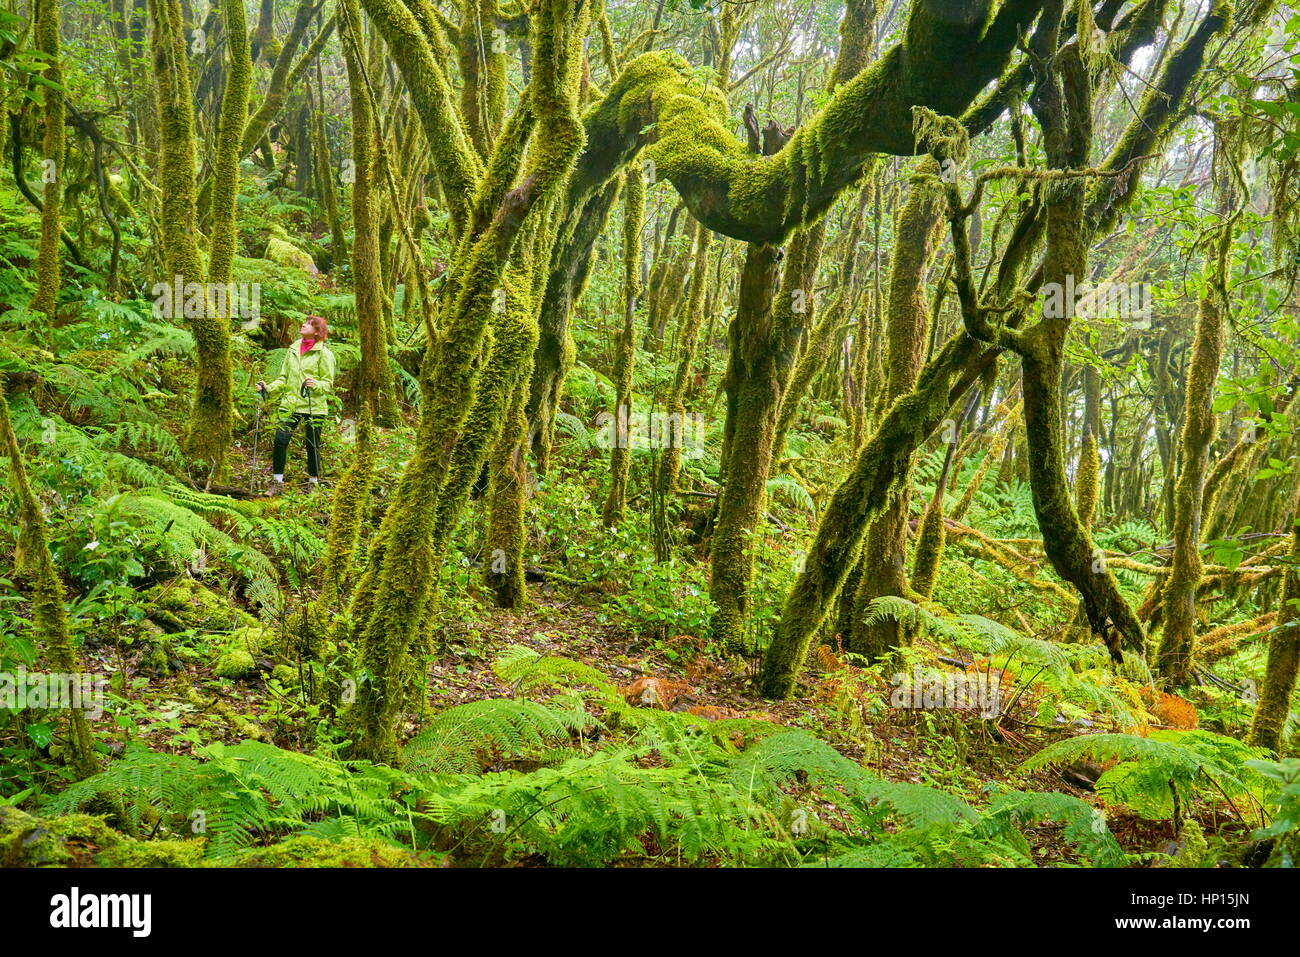 Tourist in the laurel forest, Garajonay National Park, La Gomera, Canary Islands, Spain - Stock Image